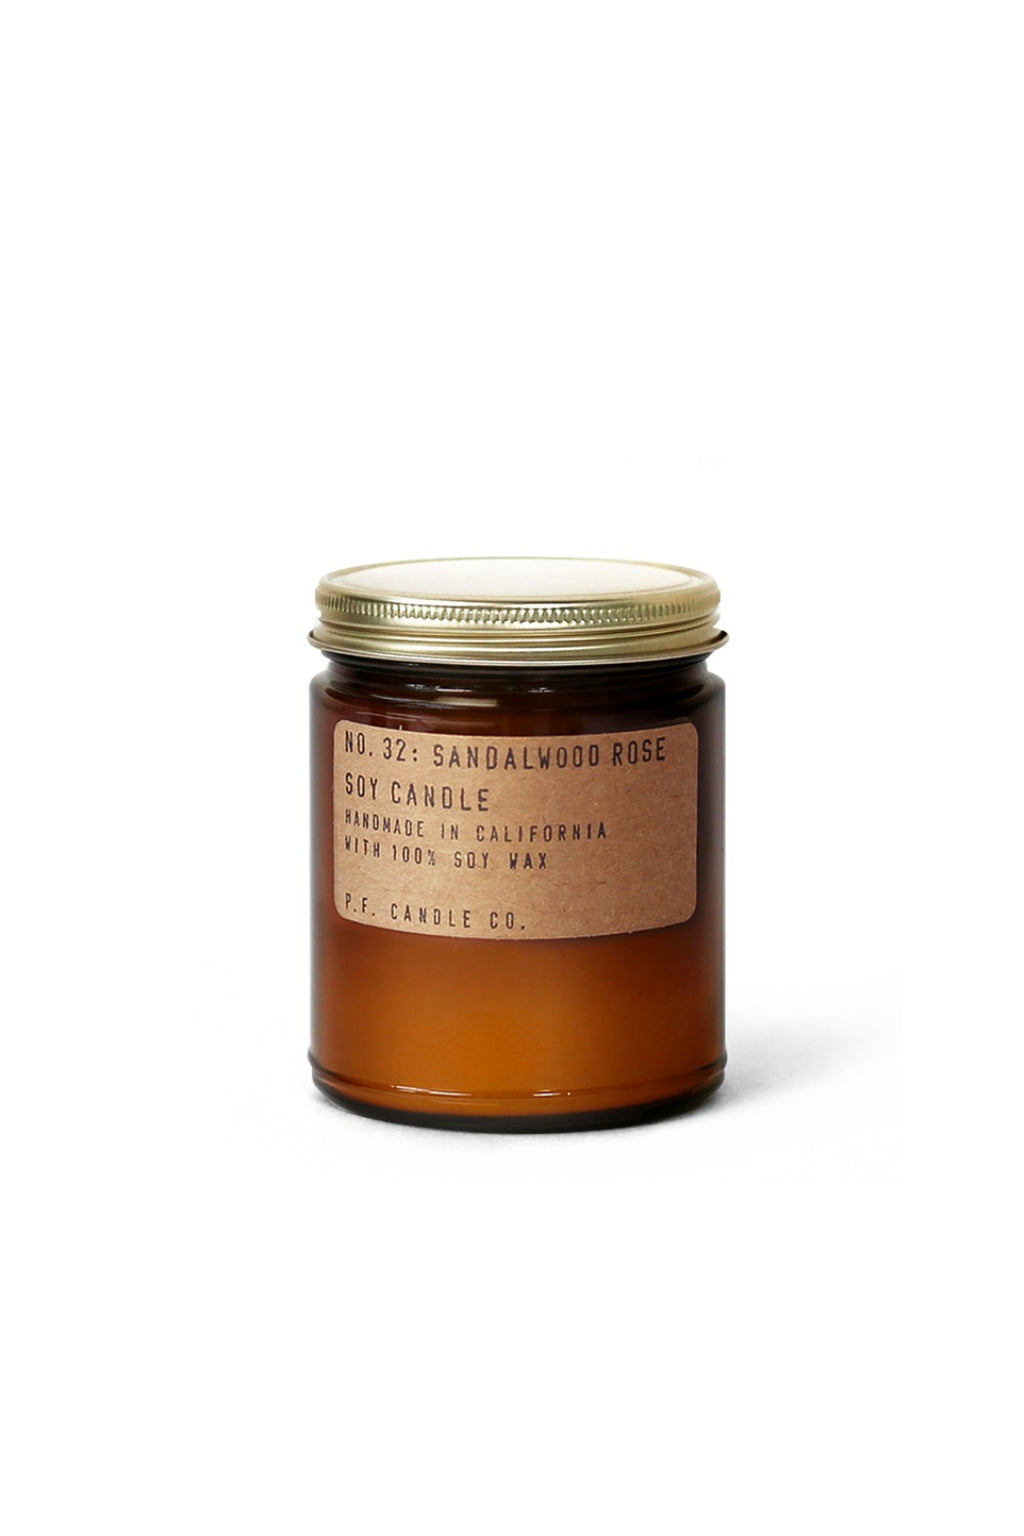 P. F. Candle Co. Mini Soy Candle - Sandalwood Rose